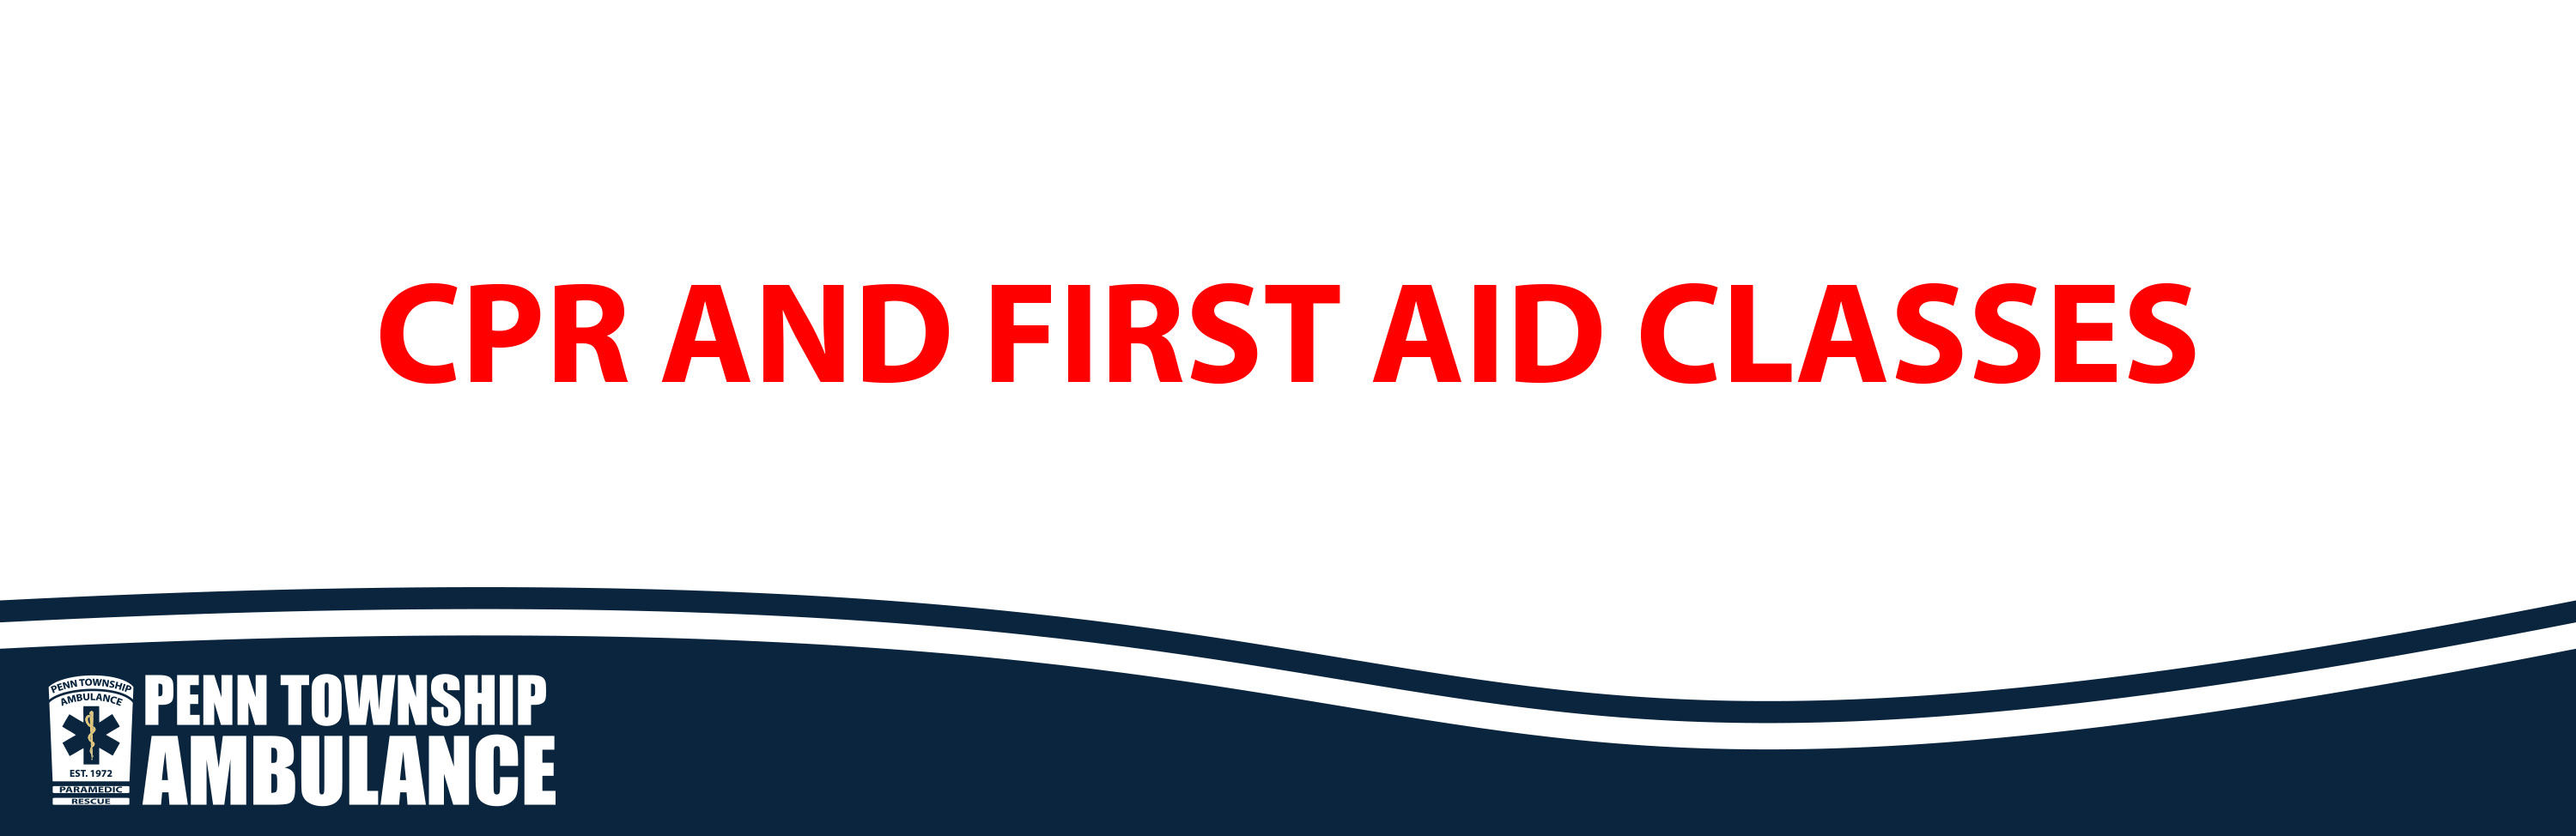 Cpr and first aid classes penn township ambulance car seat safety program 1betcityfo Choice Image